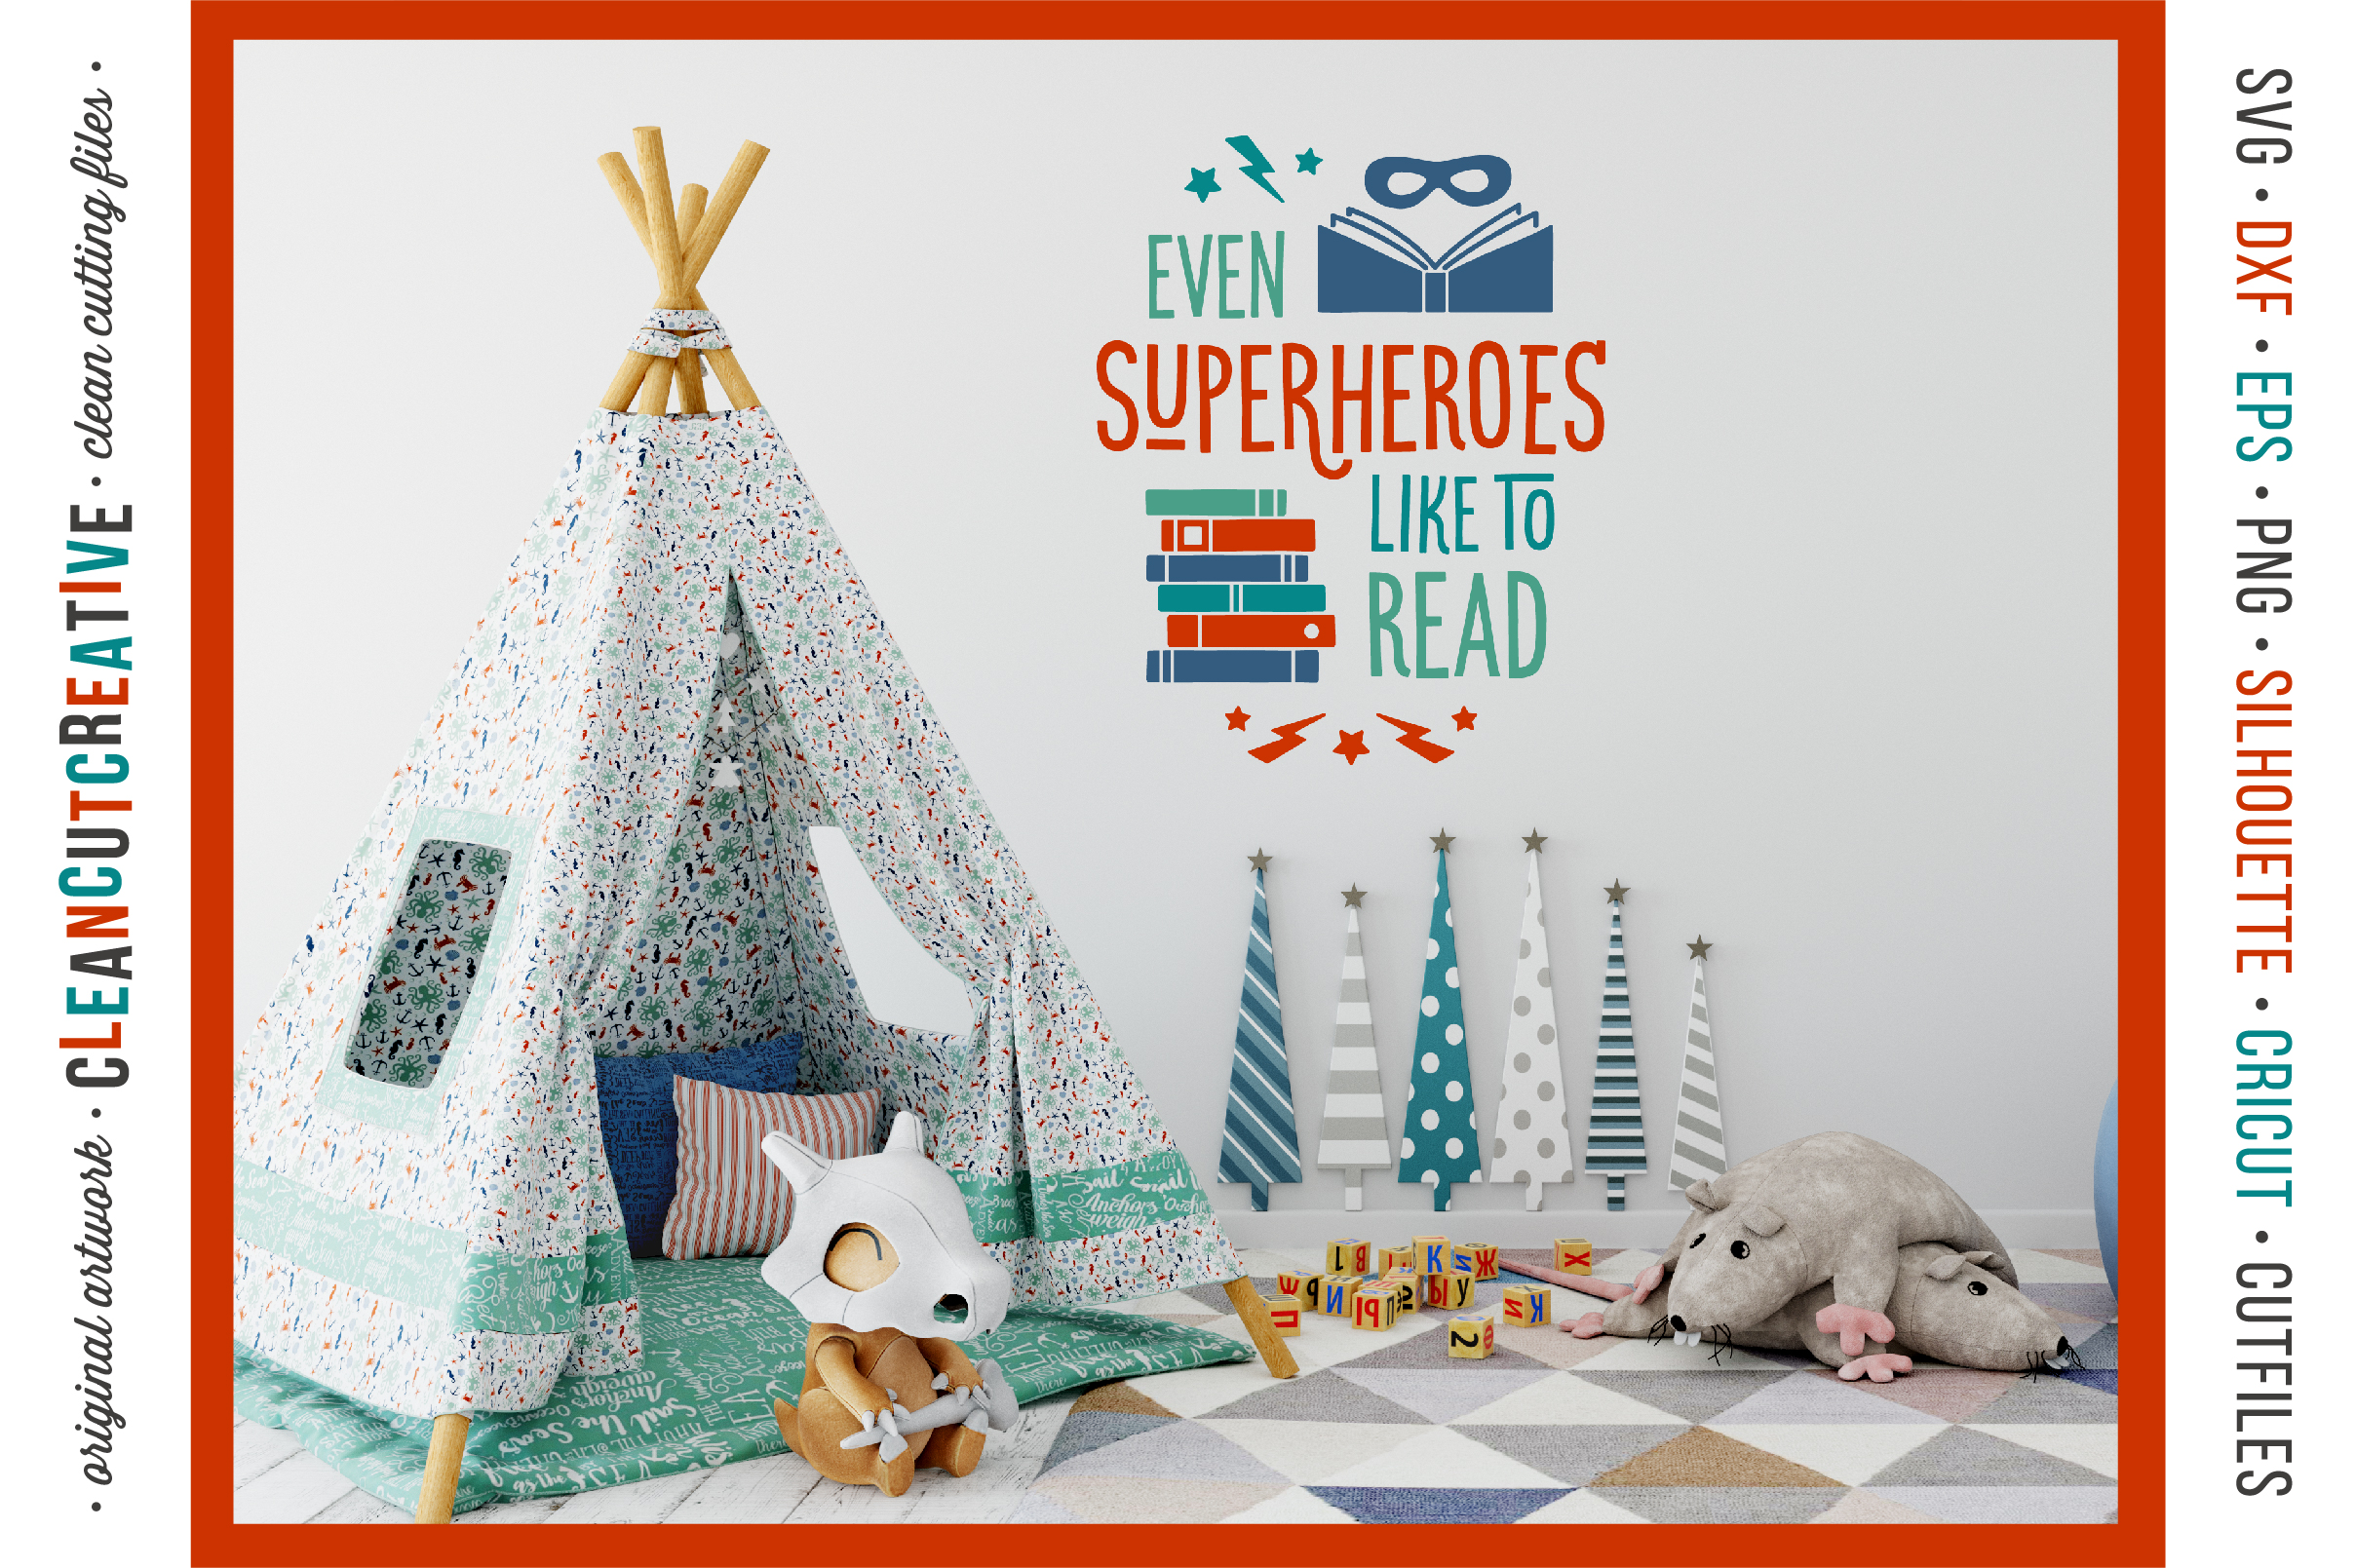 Even SUPERHEROES like to READ! - Cricut Silhouette cut file example image 2